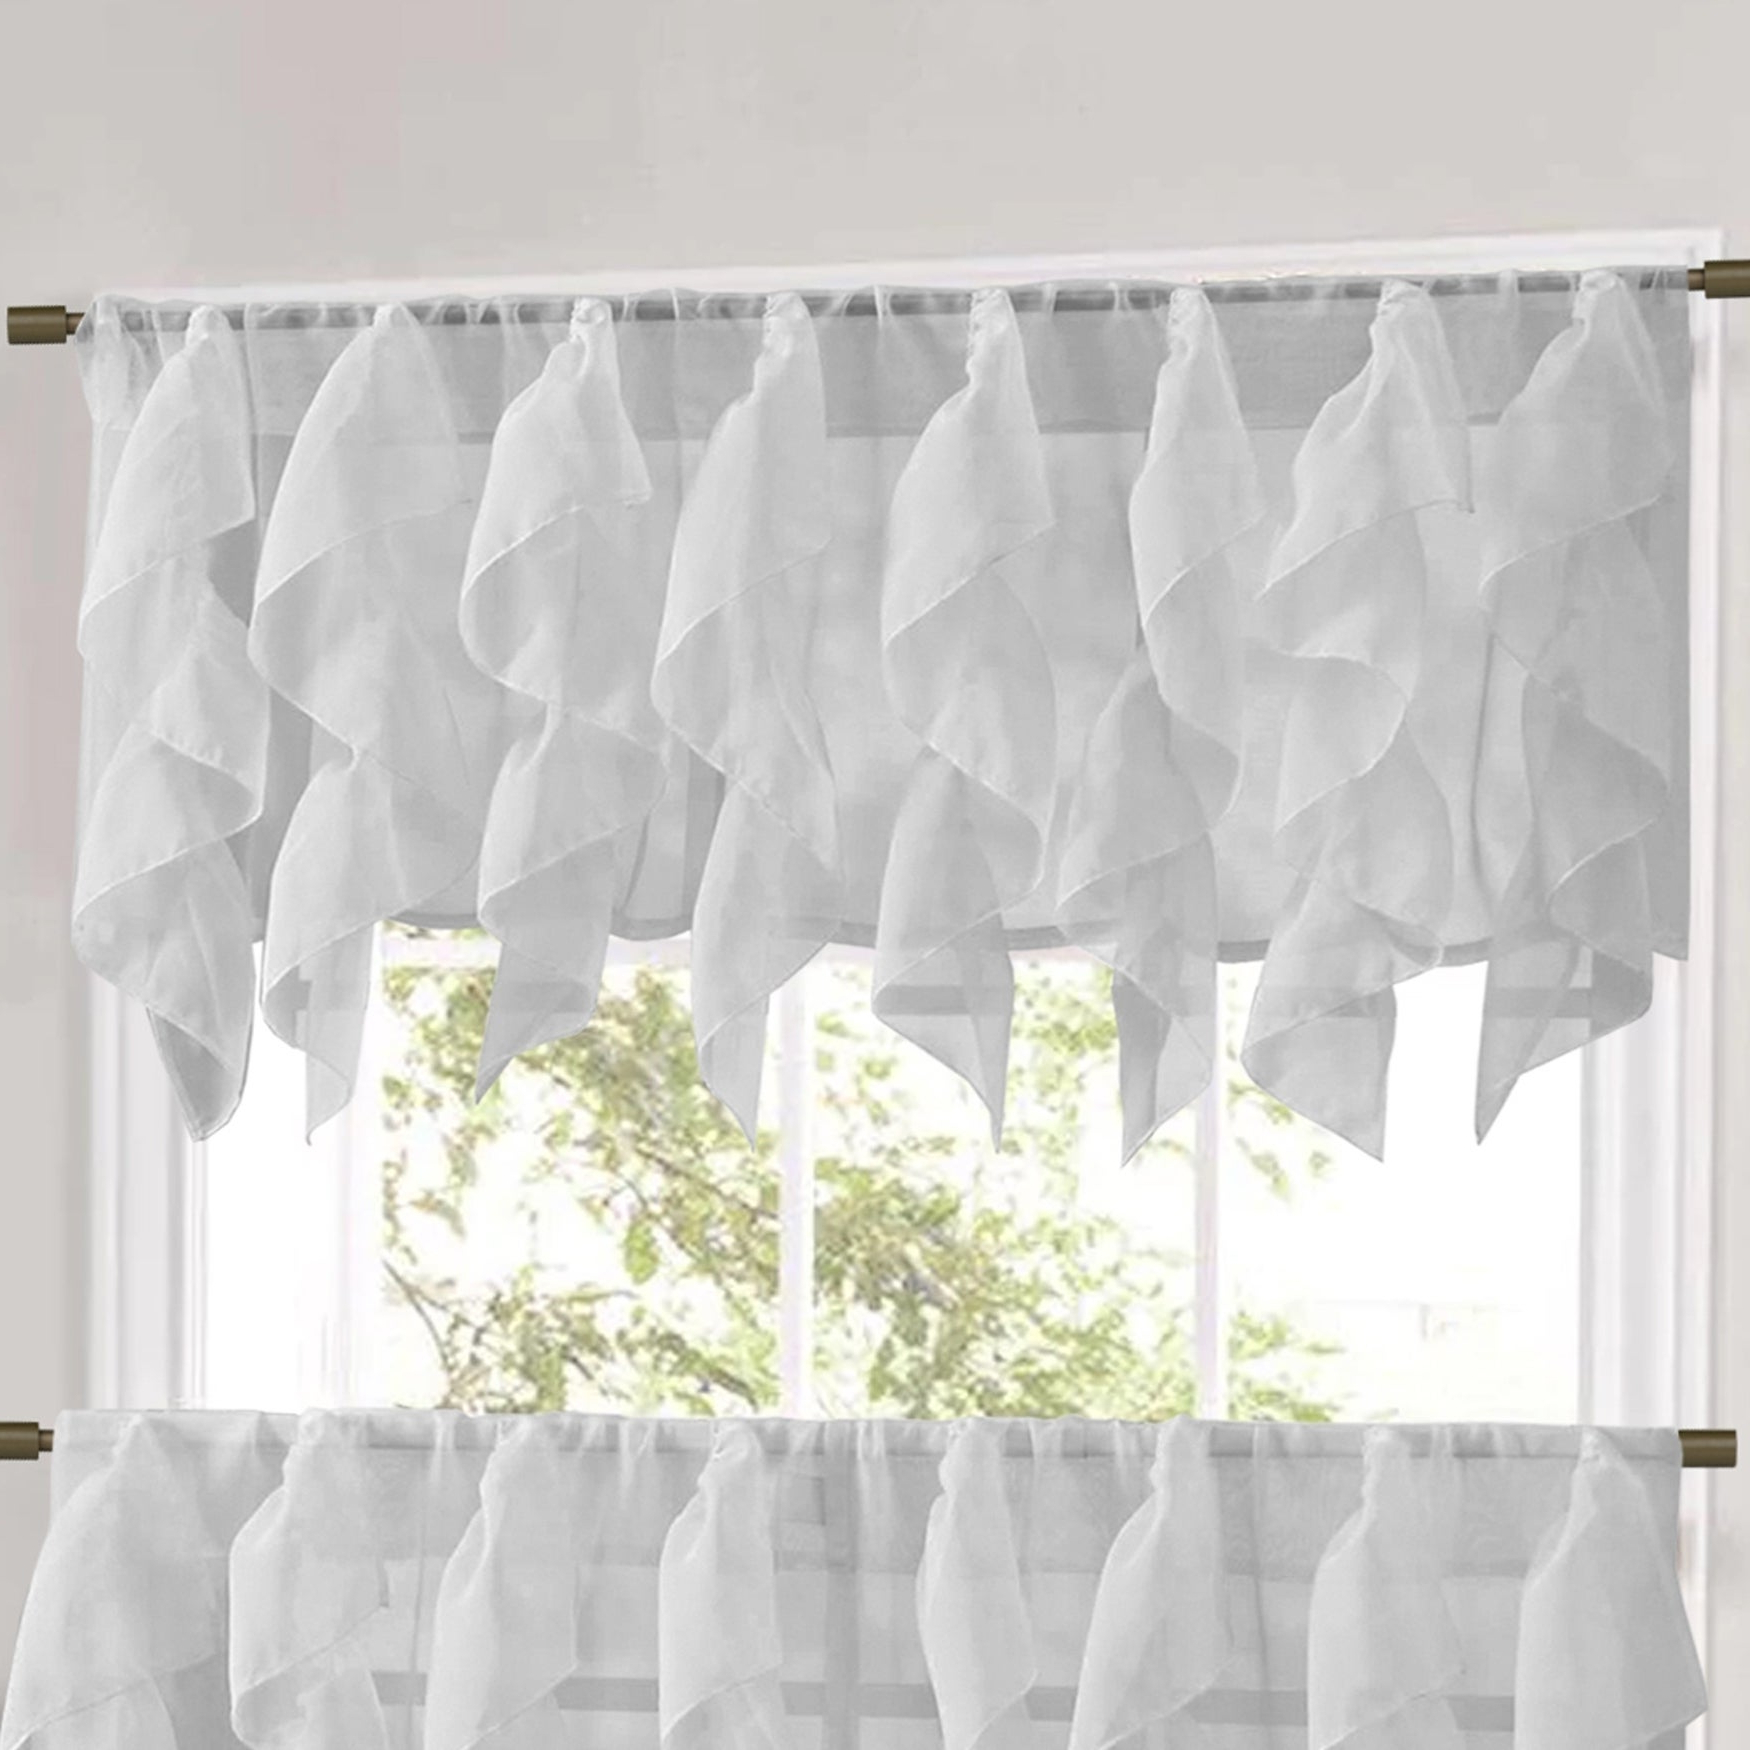 Newest Silver Vertical Ruffled Waterfall Valance And Curtain Tiers With Regard To Sweet Home Collection Silver Vertical Ruffled Waterfall Valance And Curtain Tiers (View 2 of 20)